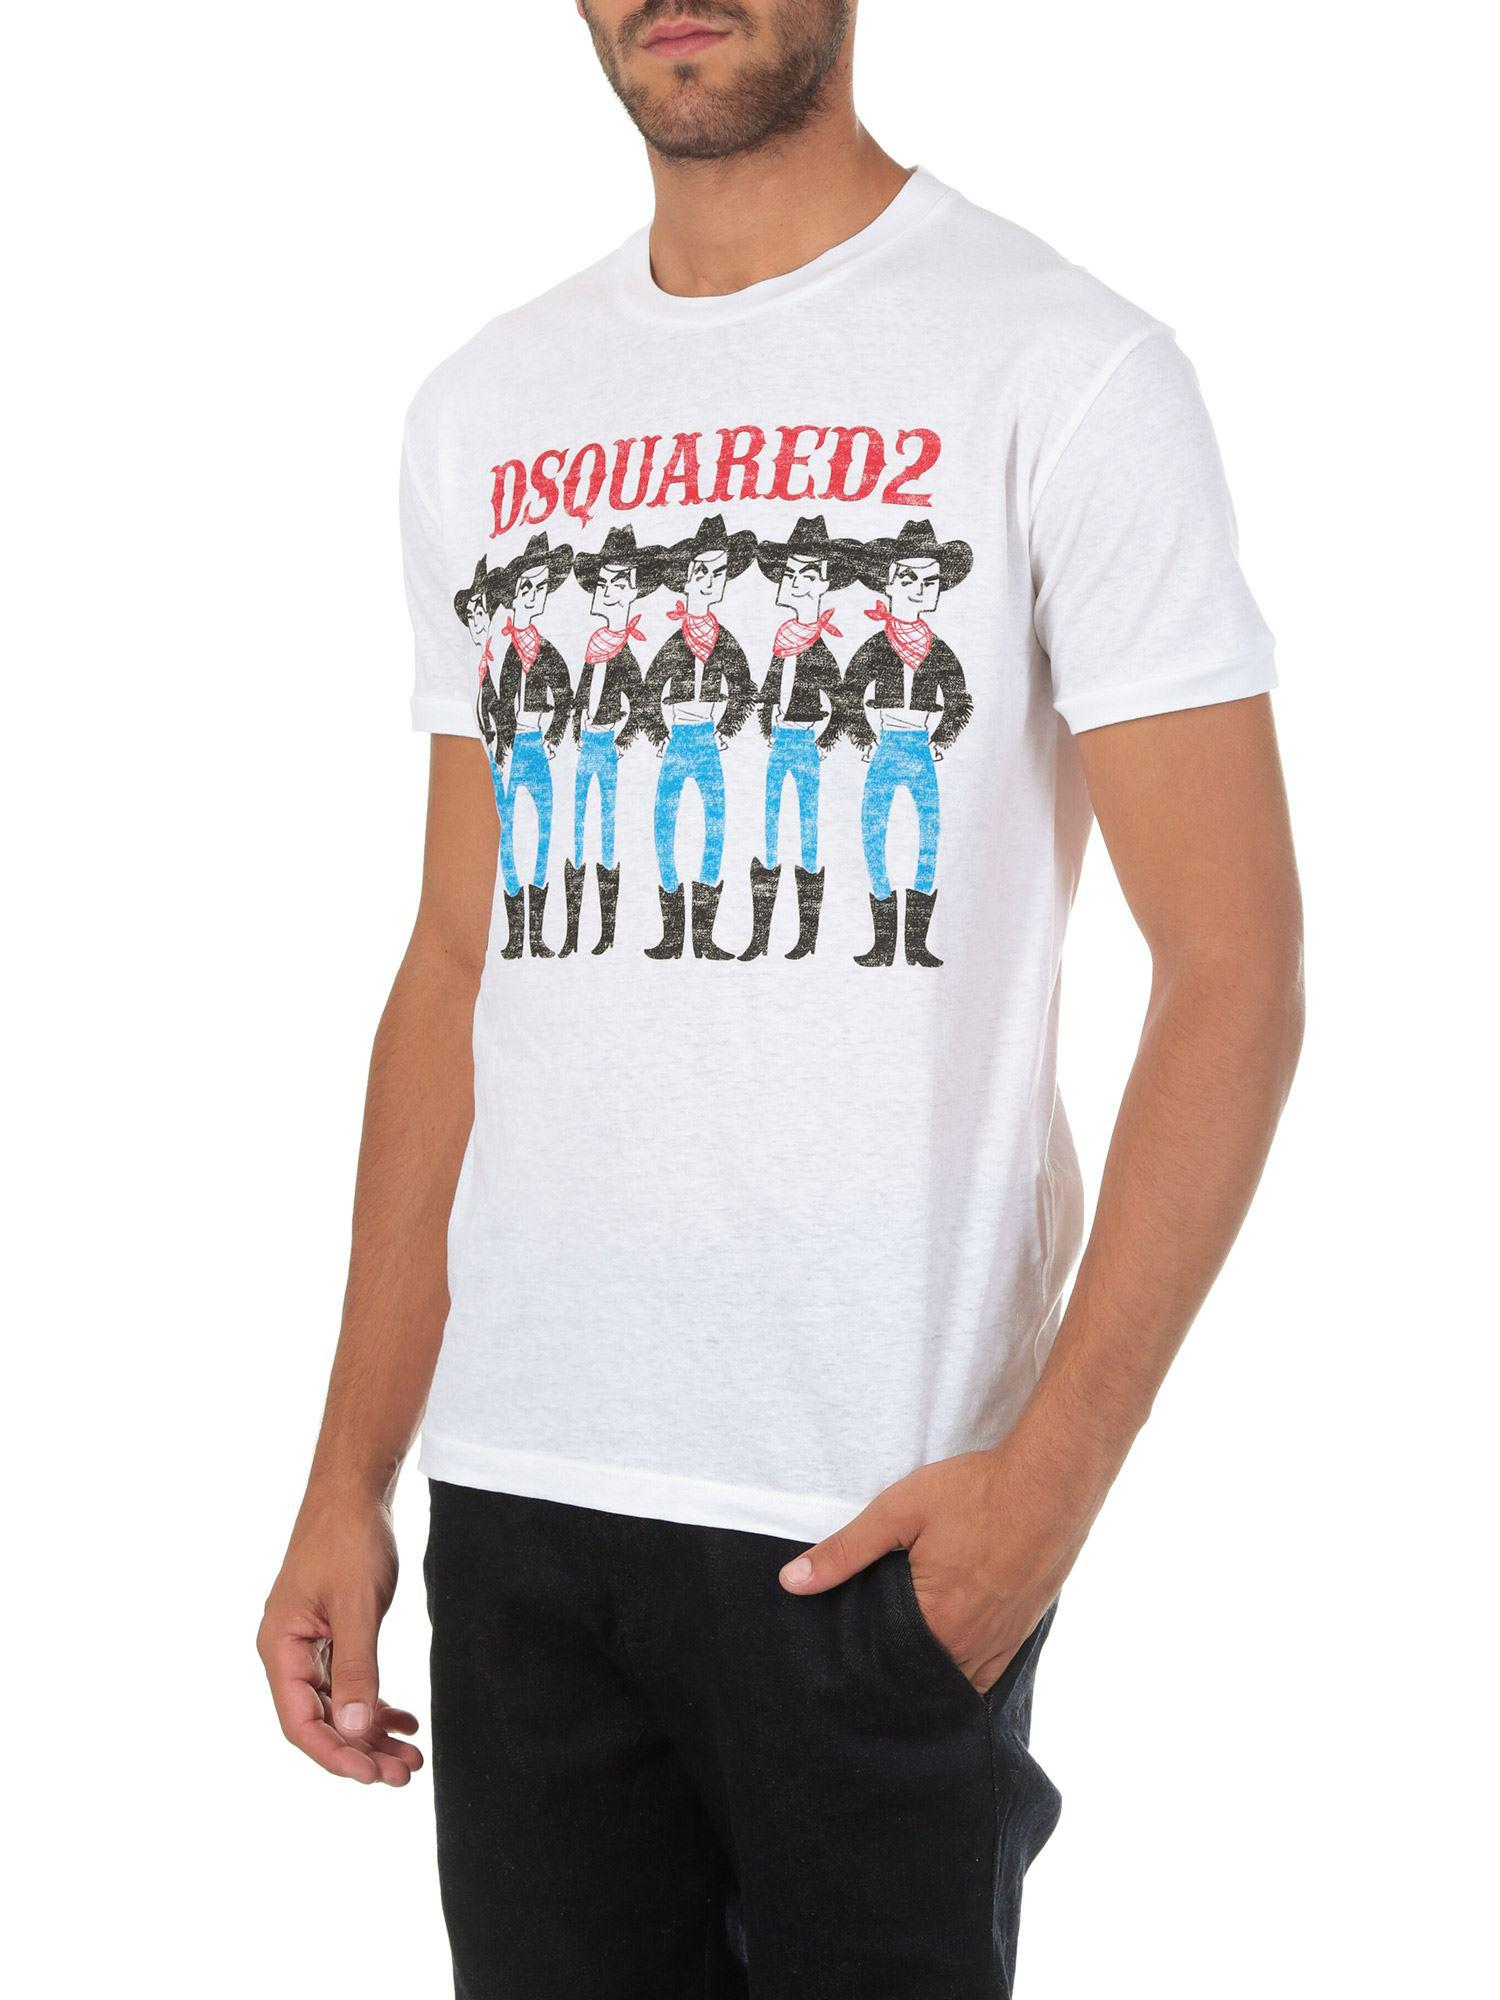 a8fb69eb Lyst - DSquared² Cowboys Printed Crew Neck T-shirt in White for Men